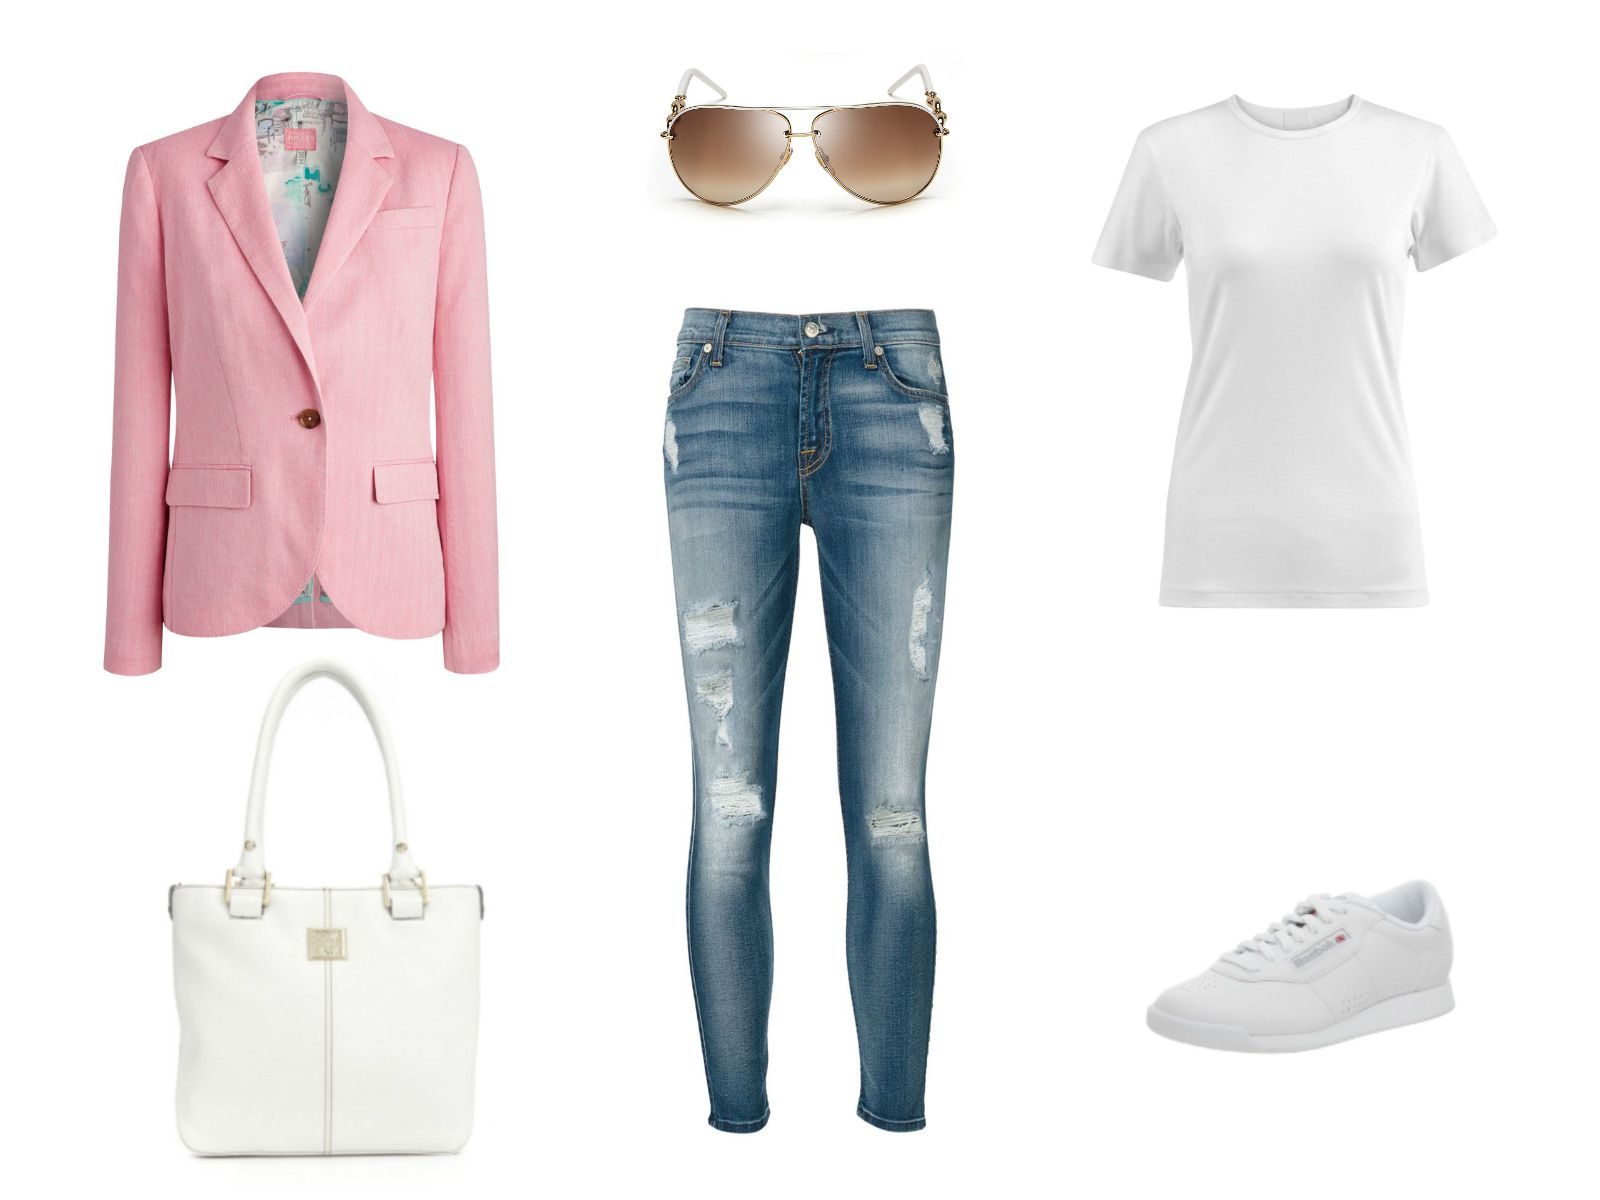 Outfit idea - cropped jeans and pink blazer